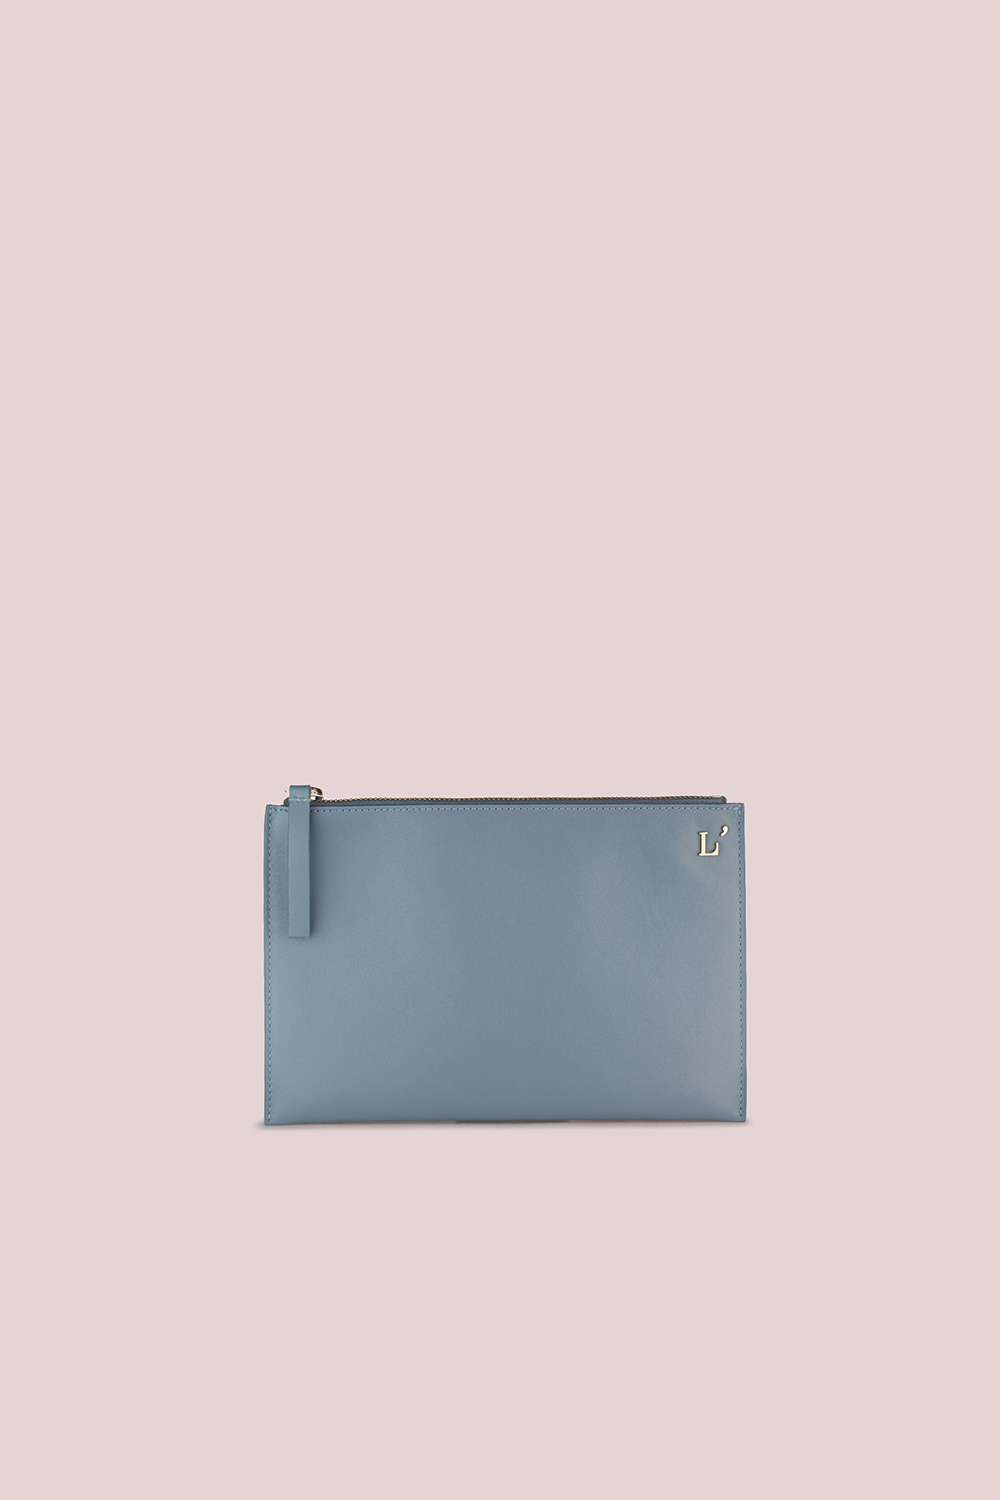 POUCH IN CERULEAN-BLUE LEATHER